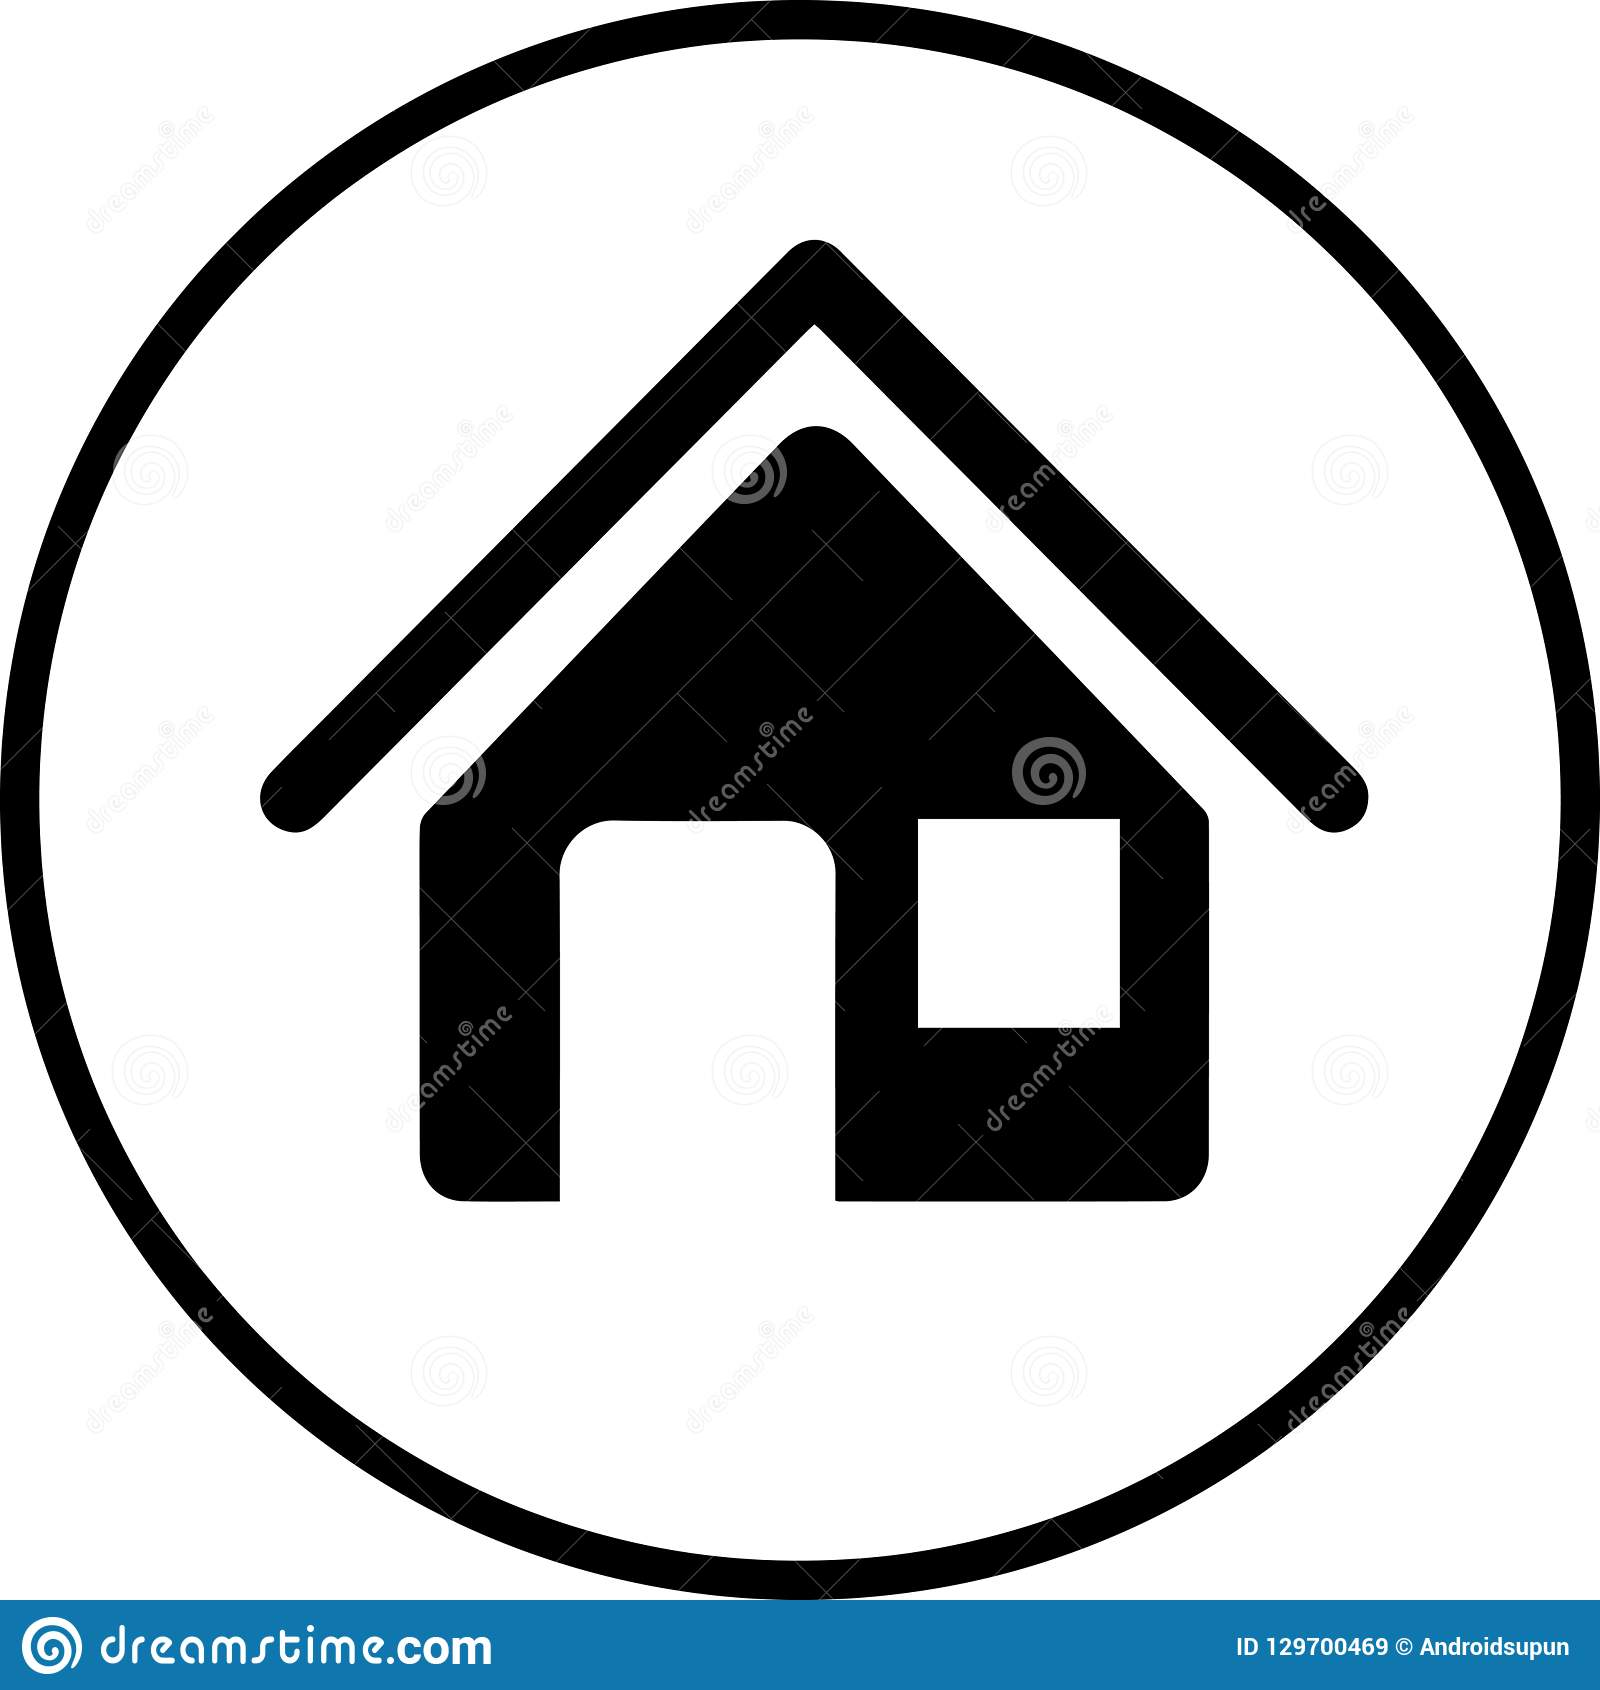 Home icon stock vector. Illustration of dream, brand ...